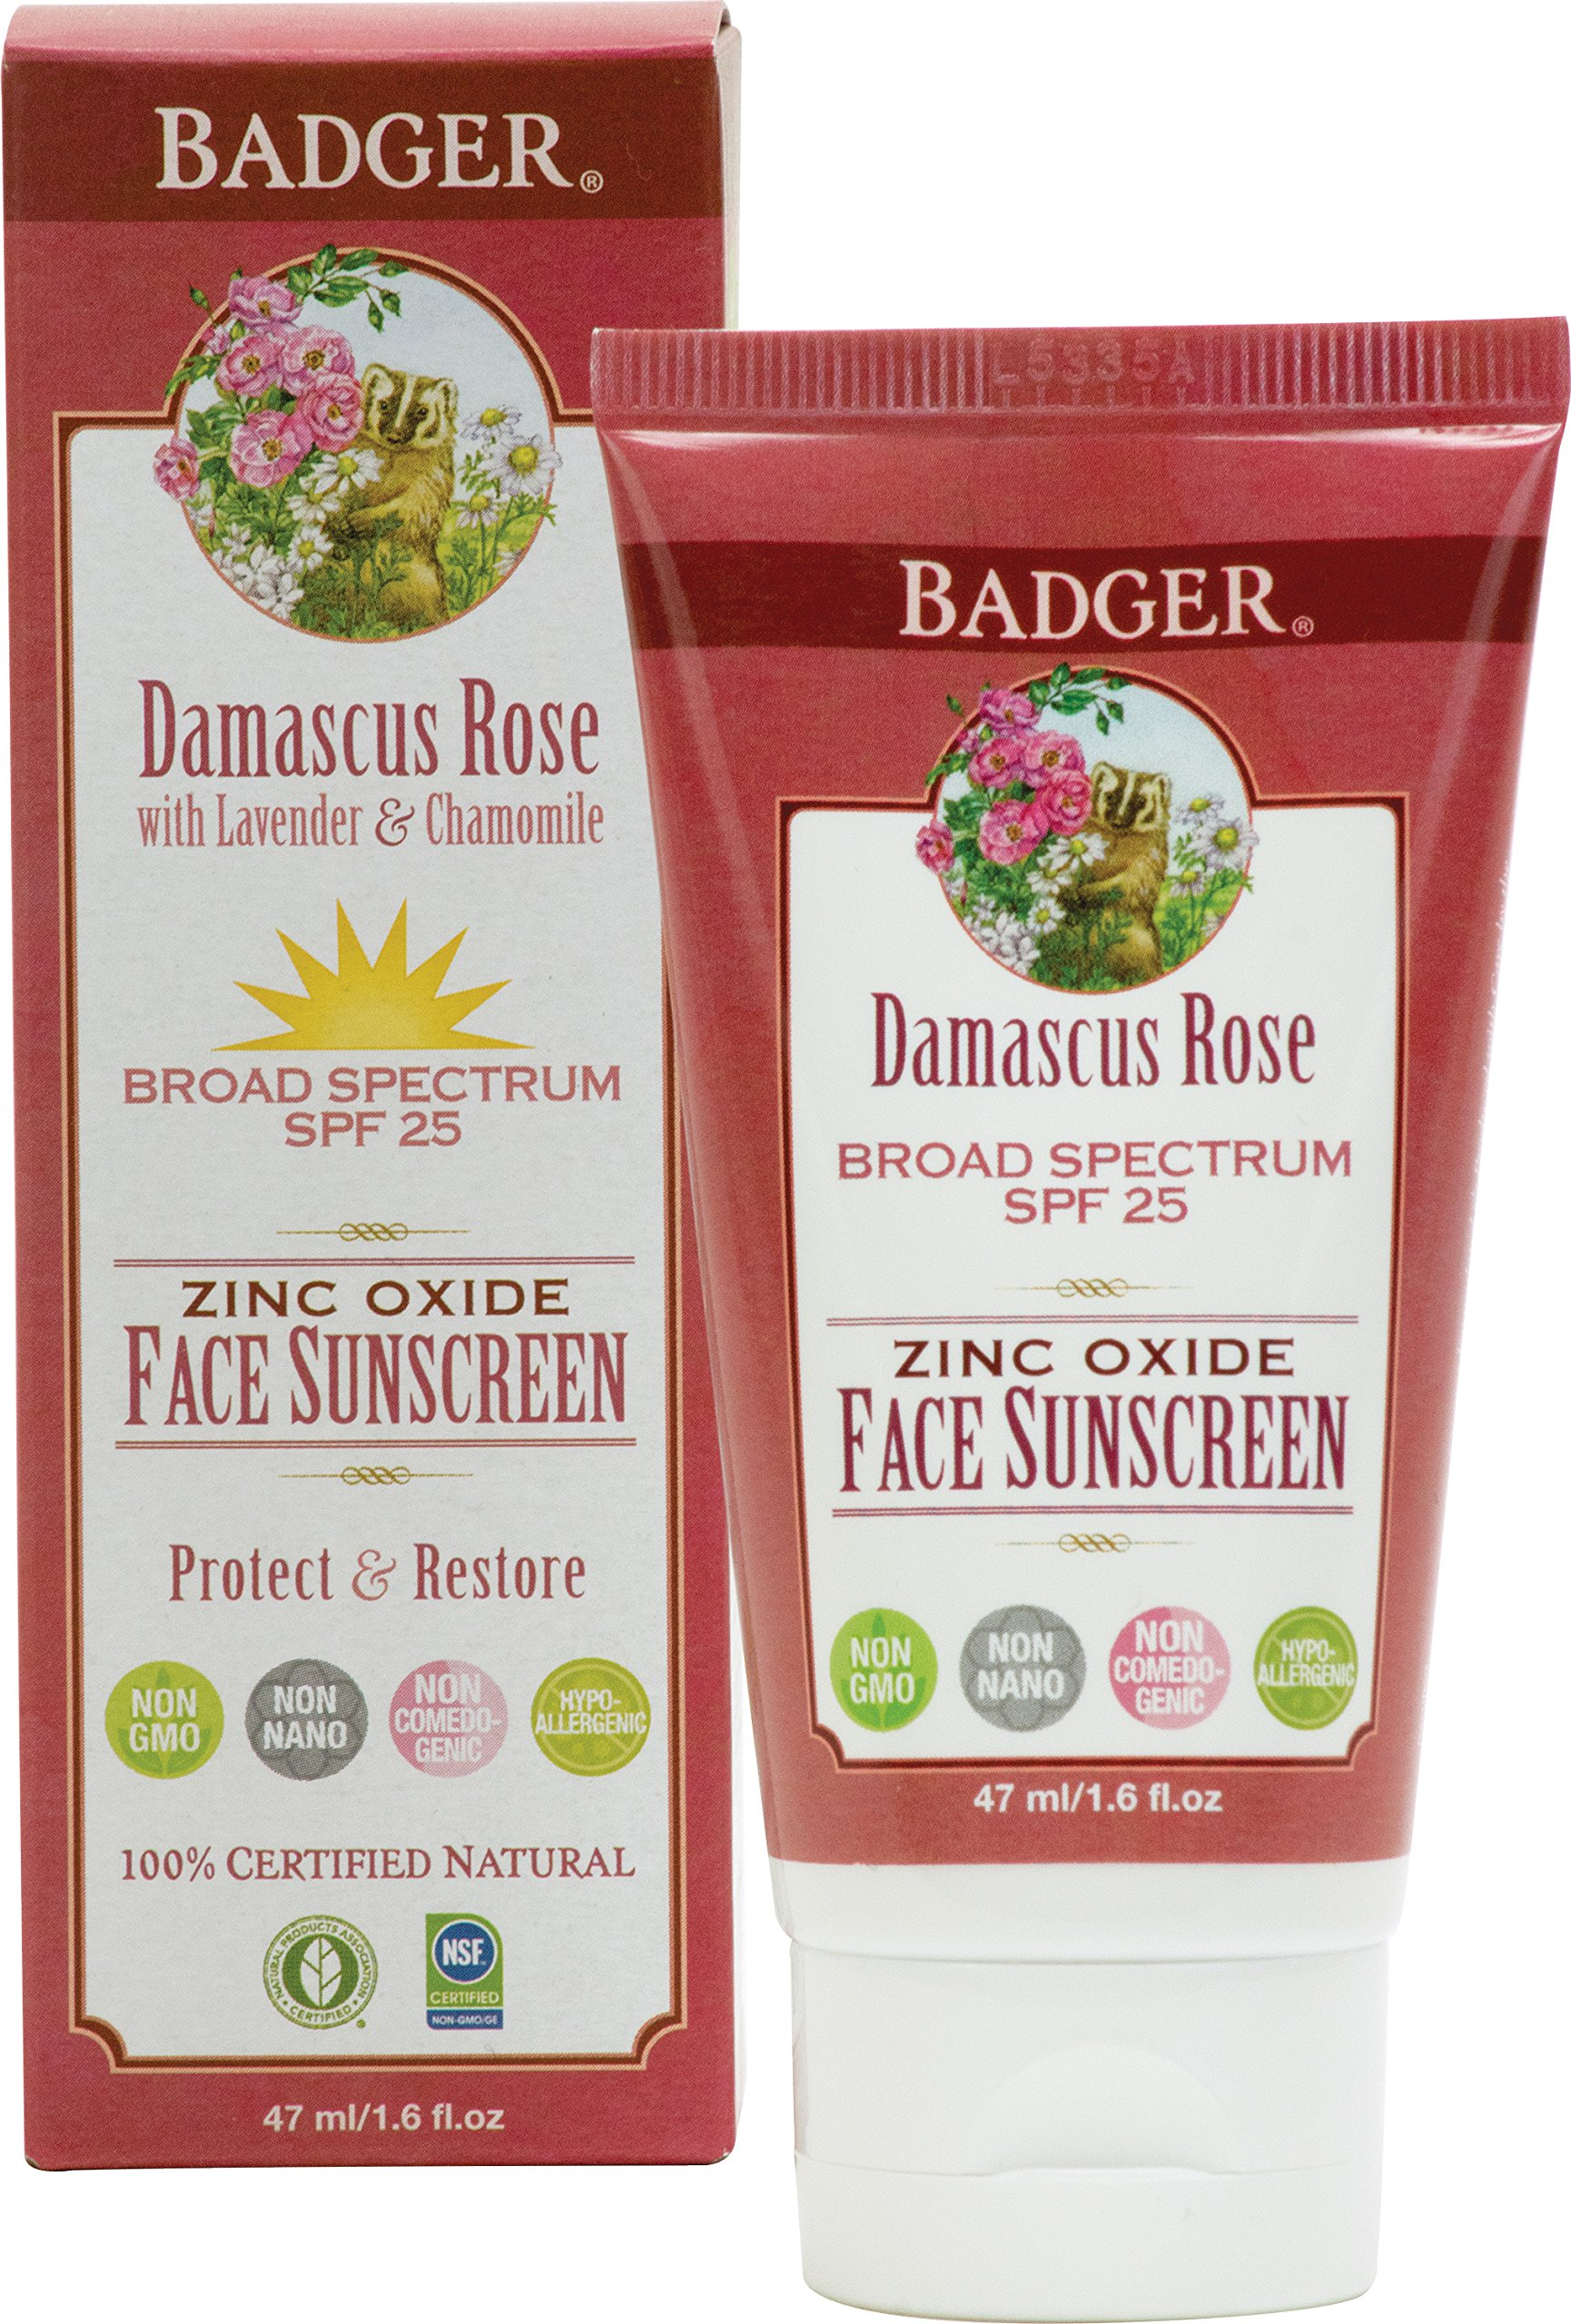 Badger Damascus Rose SPF 25 Sheer Tint Face Sunscreen Lotion with Lavender and Chamomile - 1.6 oz Tube